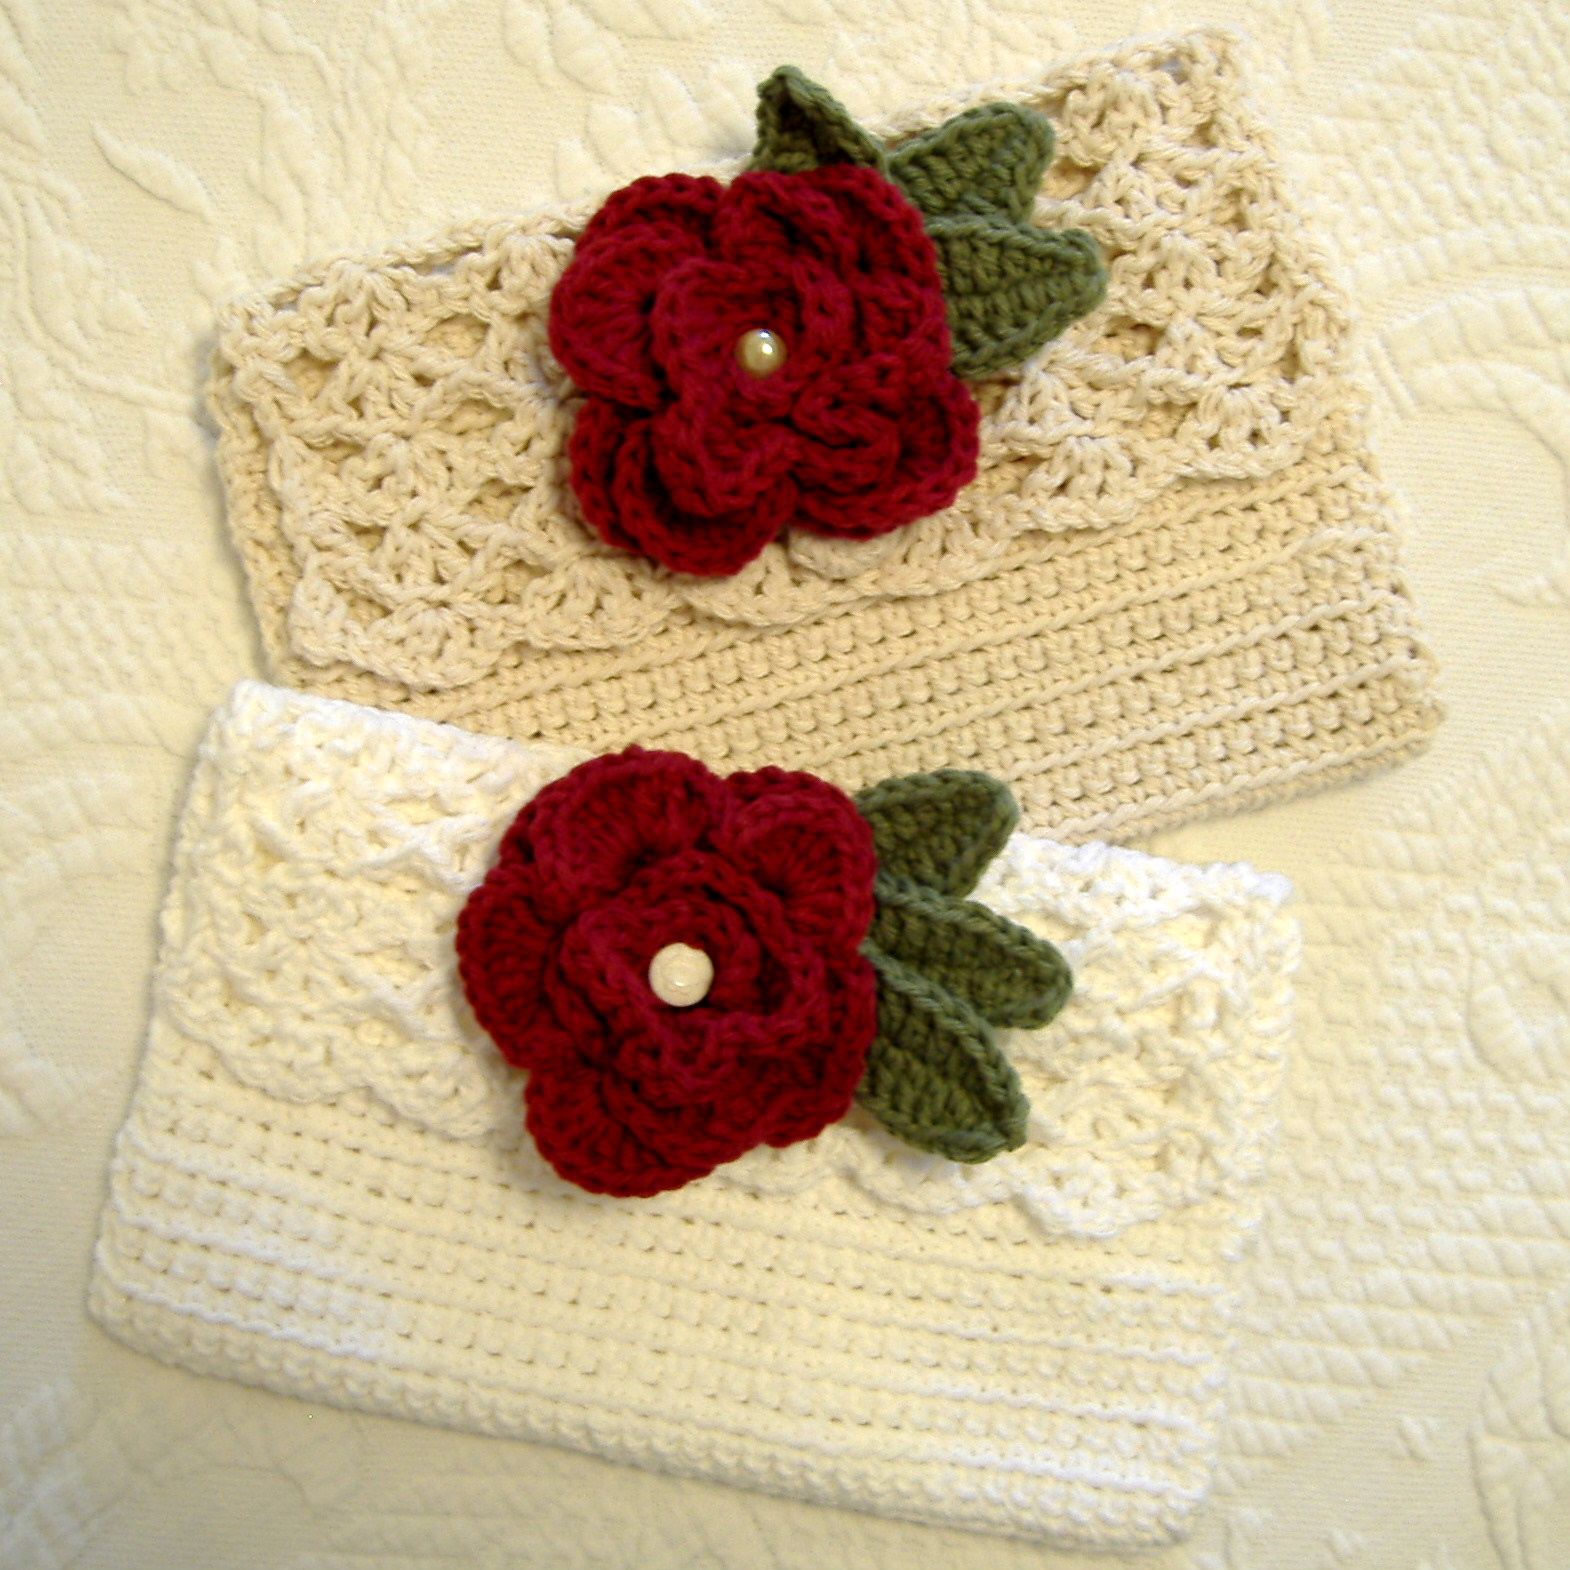 Free Crochet Patterns For Purses Bags : CROCHET PATTERNS PURSES Patterns